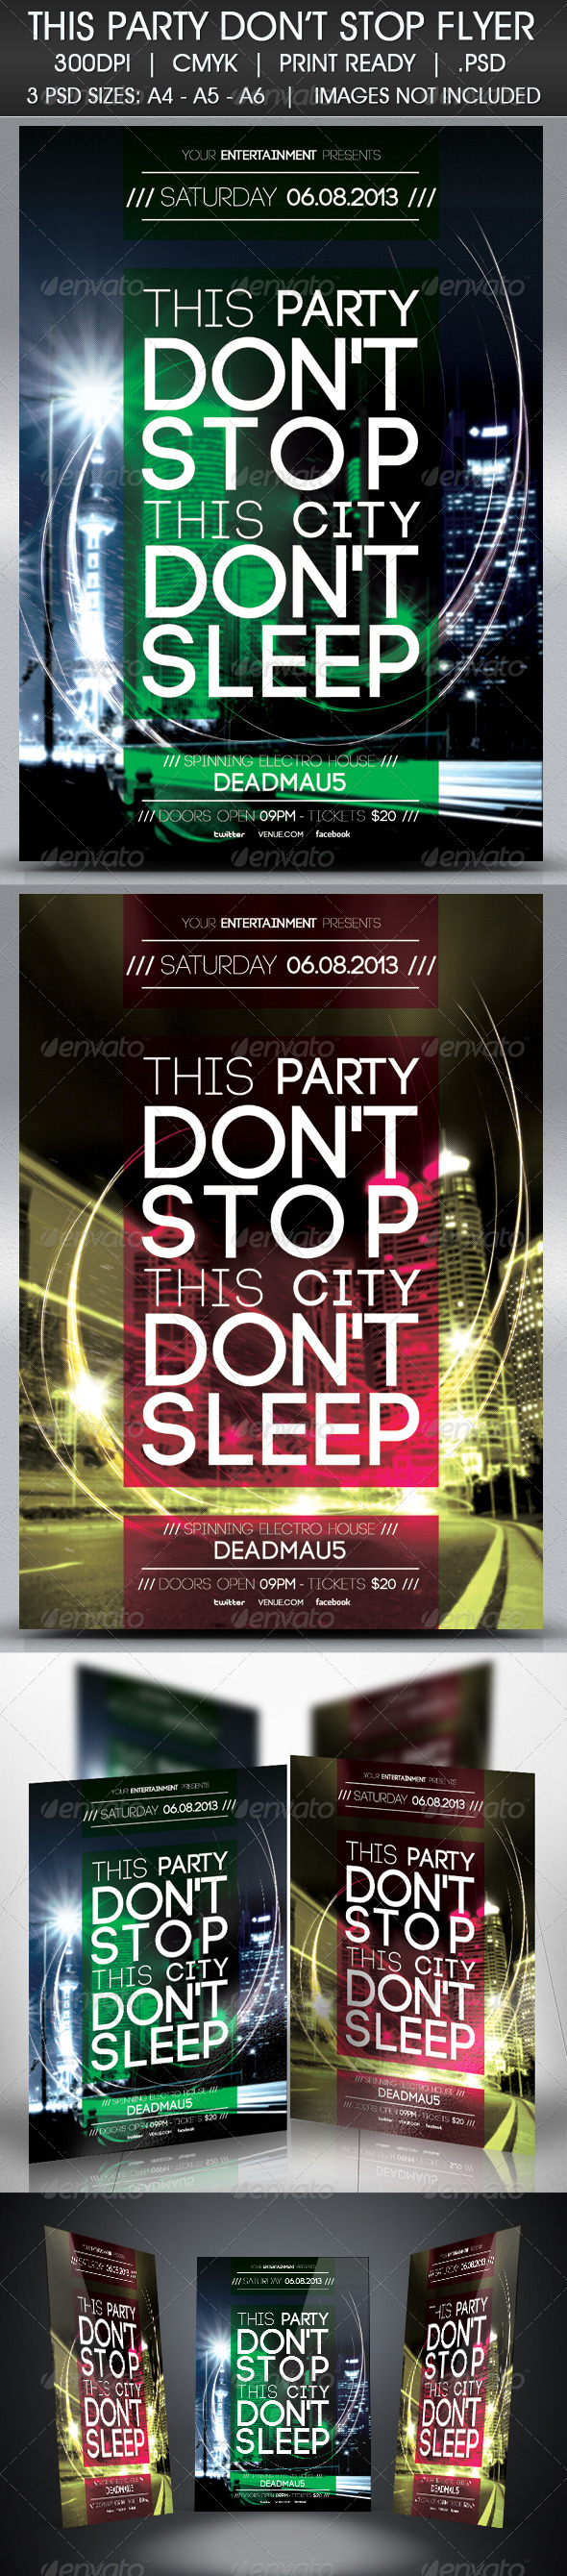 GraphicRiver Party Don t Stop Flyer 4571198